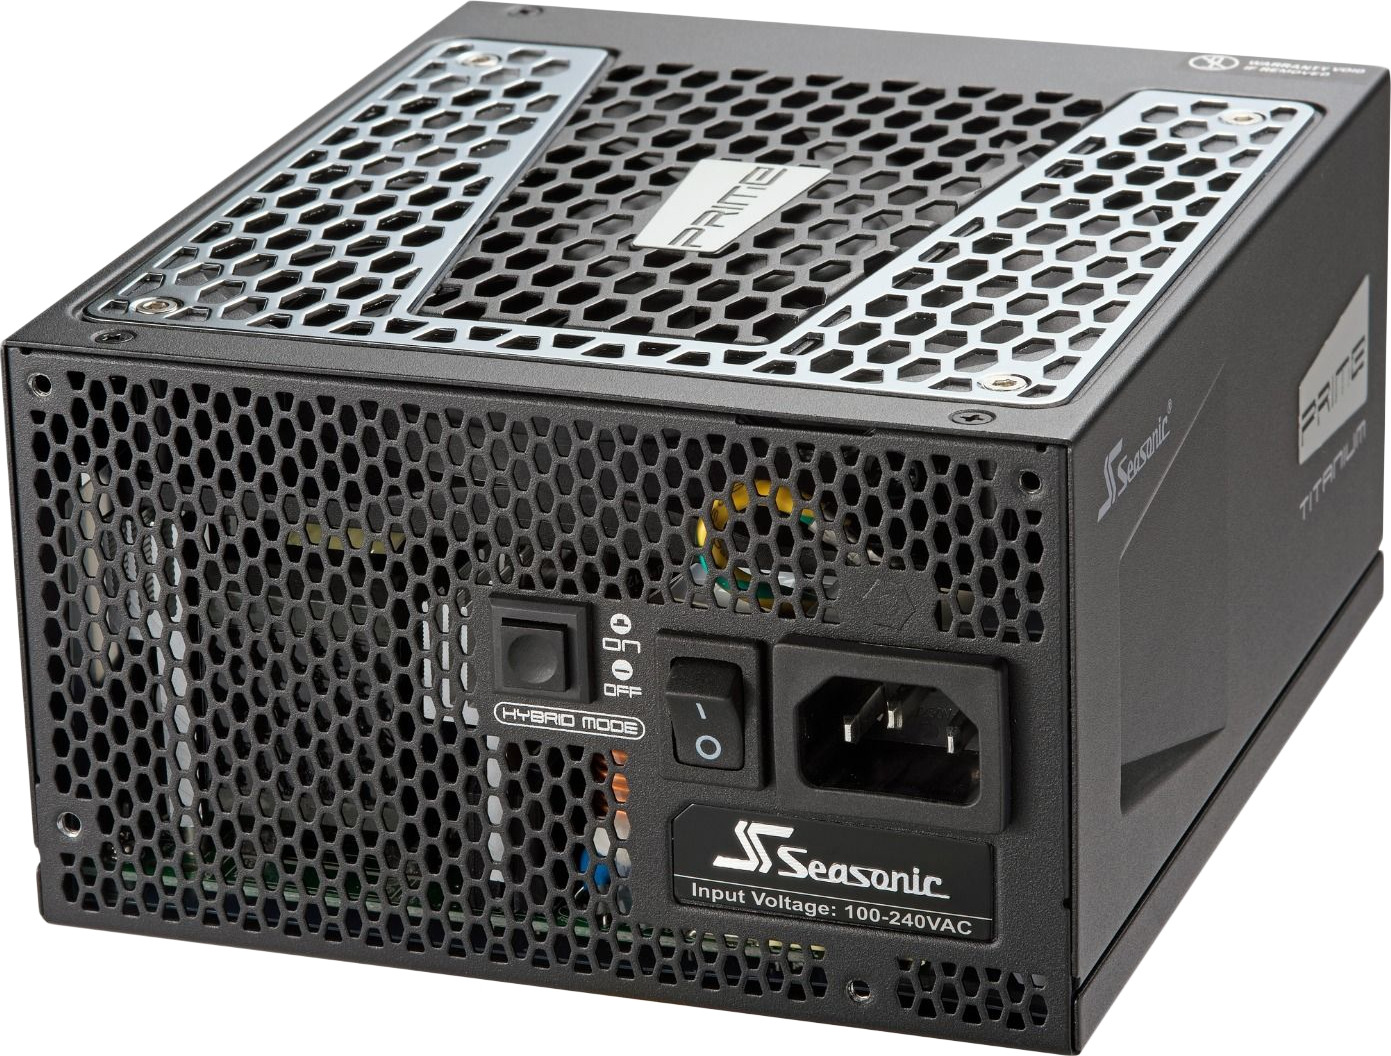 Блок питания Seasonic ATX 650W PRIME ULTRA TITANIUM SSR-650TR 80+ (24+4+4pin) APFC 135mm fan 6xSATA Cab Manag RTL блок питания atx 650 вт seasonic prime ultra gold ssr 650gd2